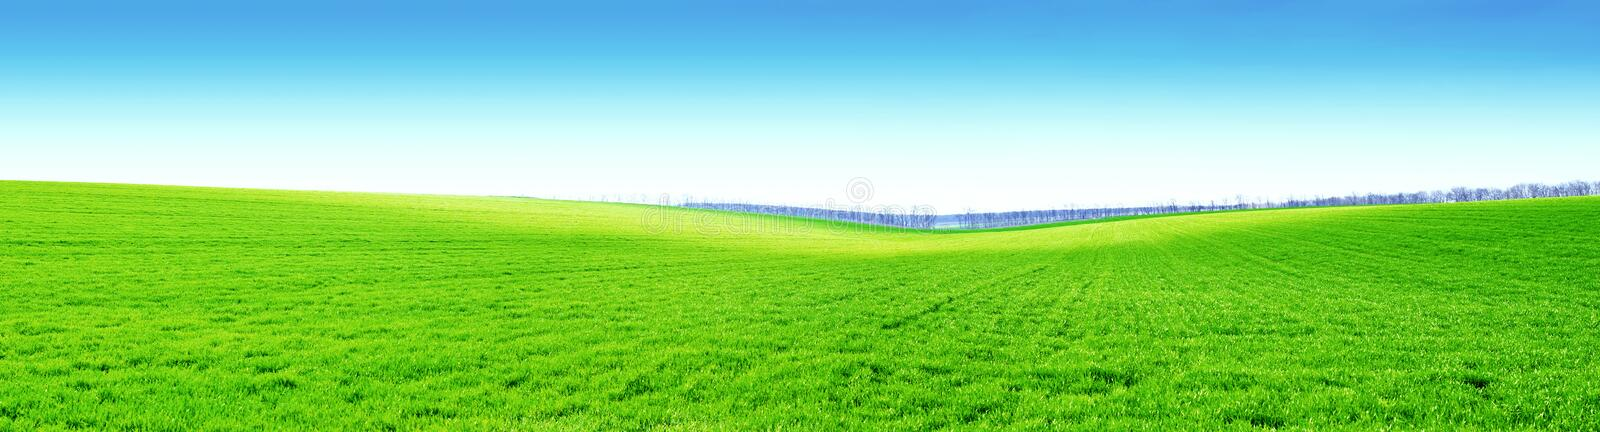 Green field and blue sky. Wide angle view of green field or crop with a clear blue sky stock images